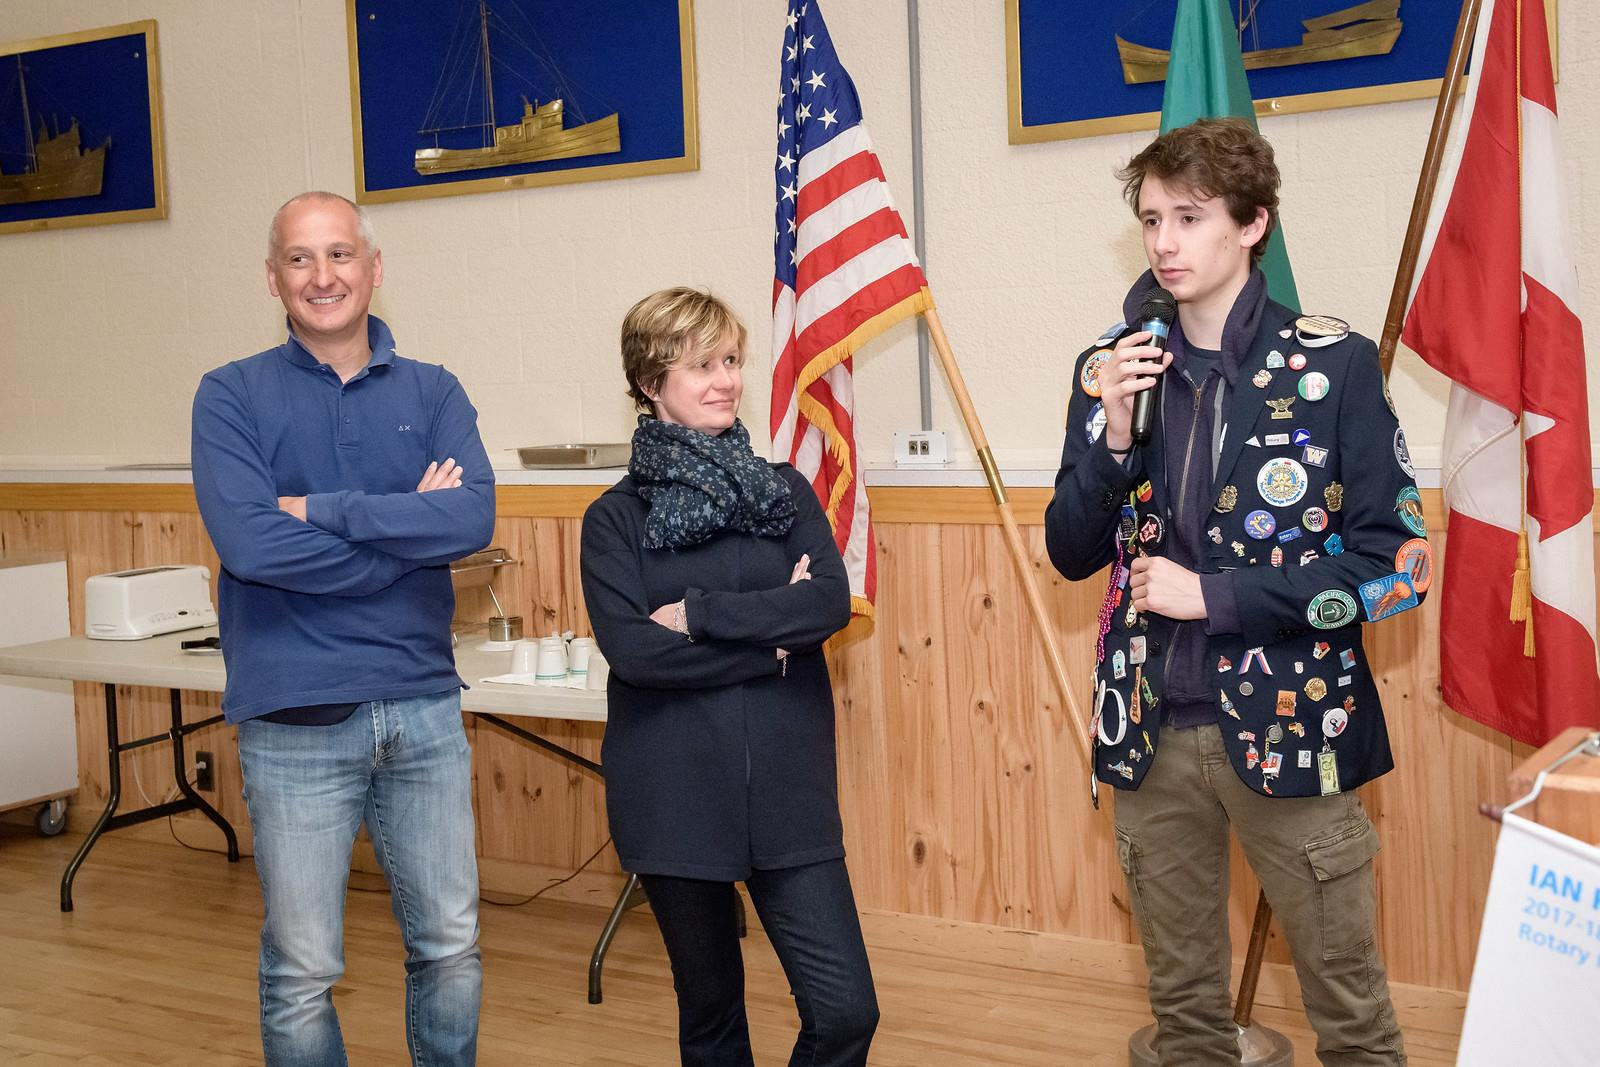 Stories Rotary Club Of Poulsbo North Kitsap Photo Gallery Marine Recruits Use Circuit Course To Build Strength Jacks Parents Joined Us